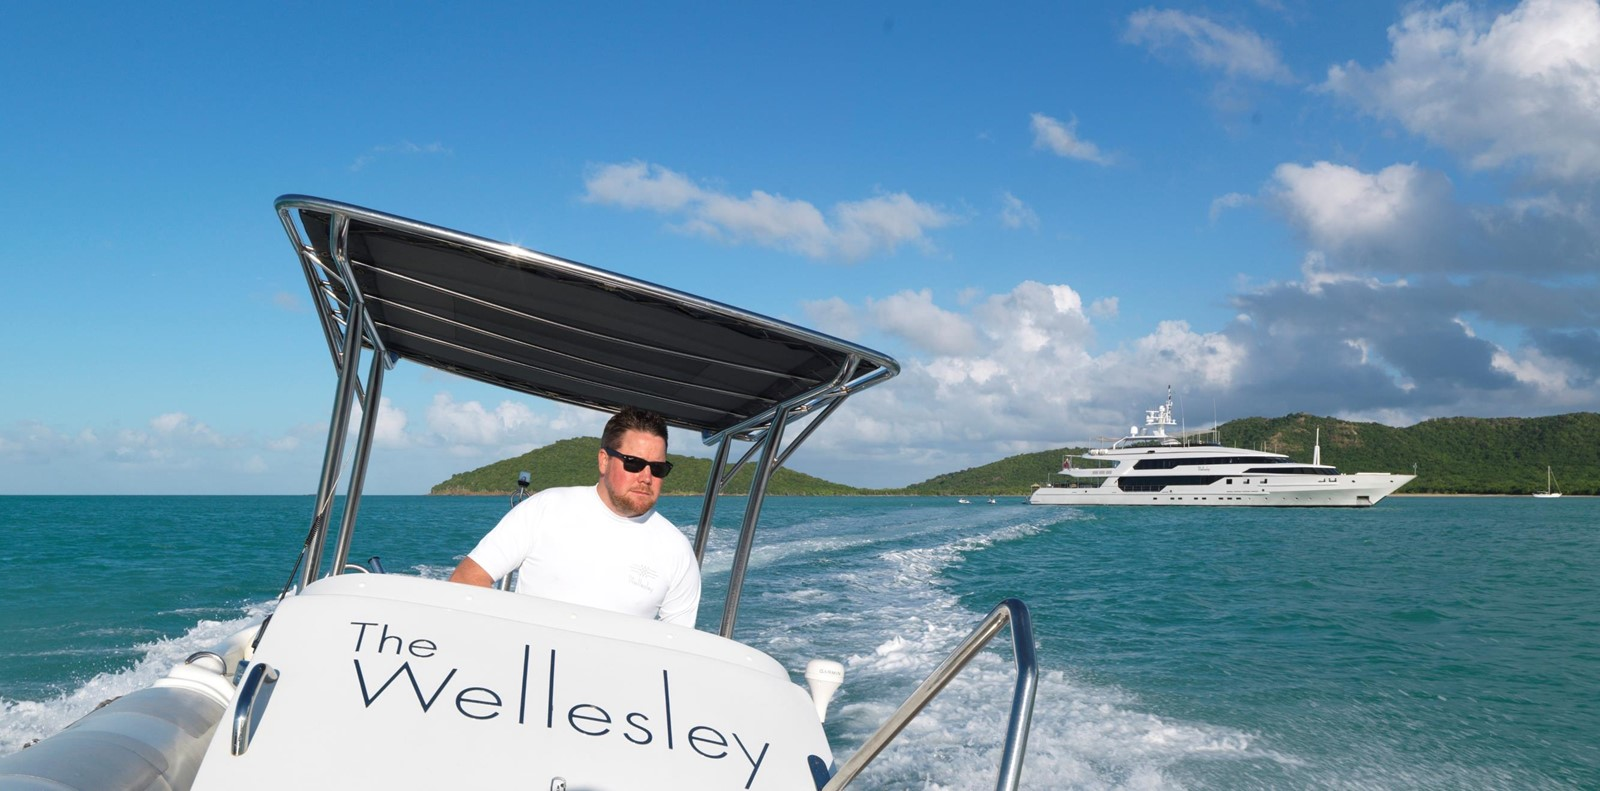 THE WELLESLEY Yacht for Sale